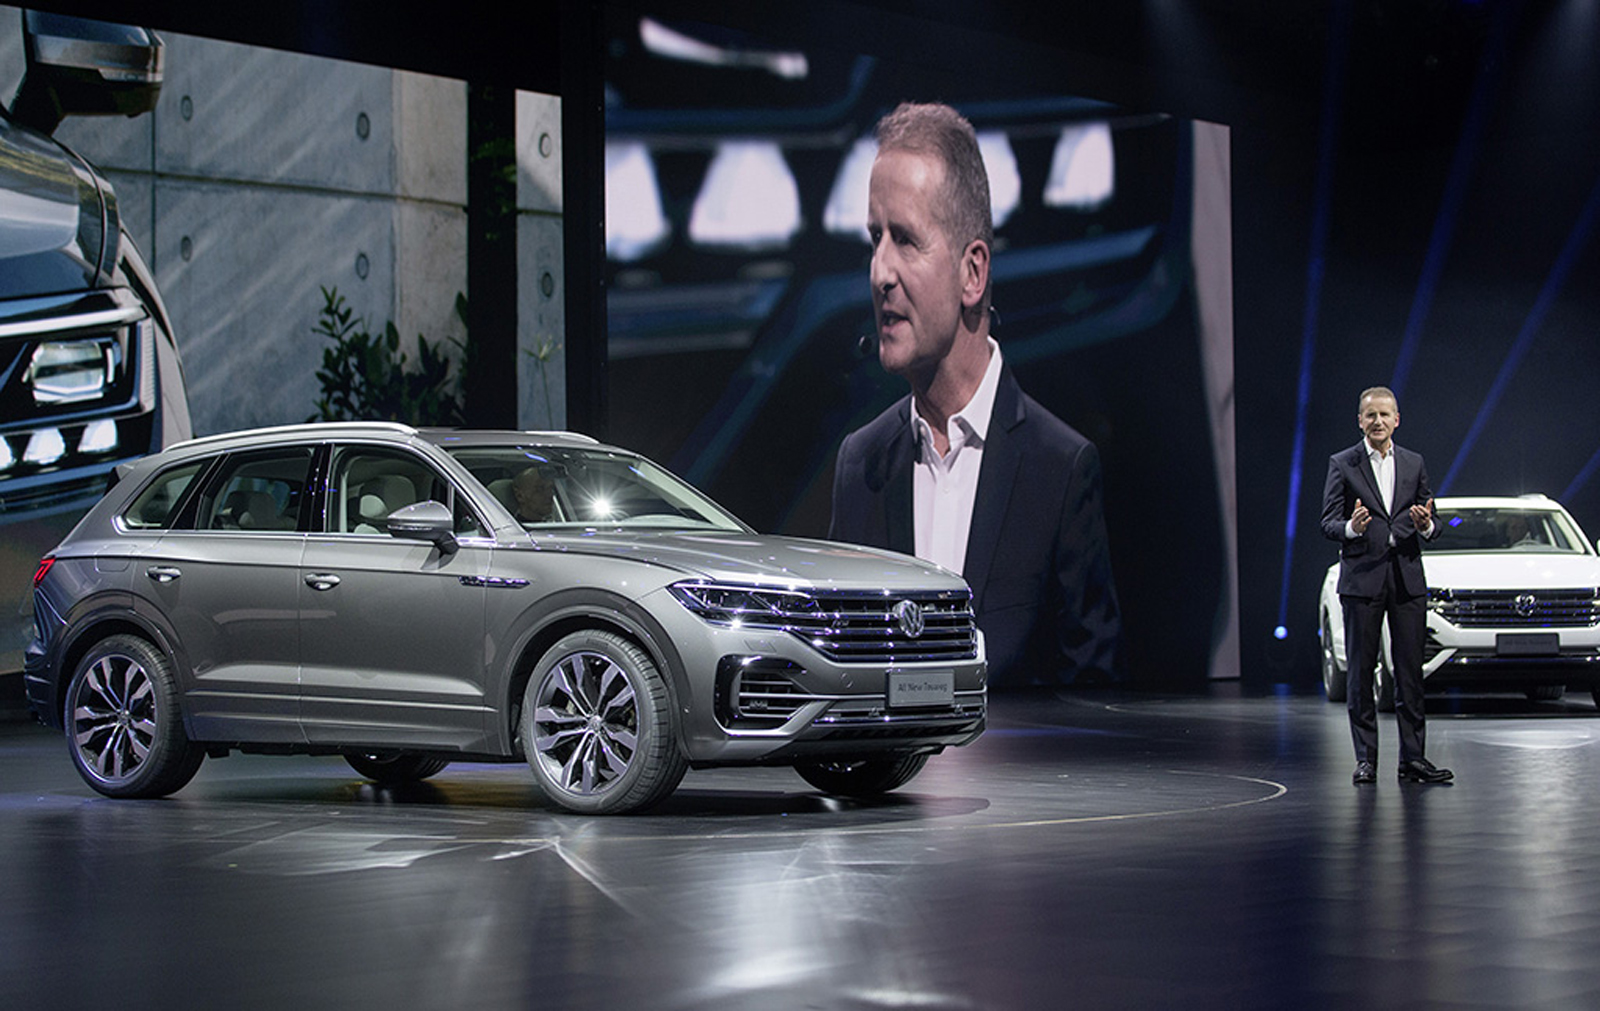 All New Volkswagen Touareg Has China in its Sights » AutoGuide.com News